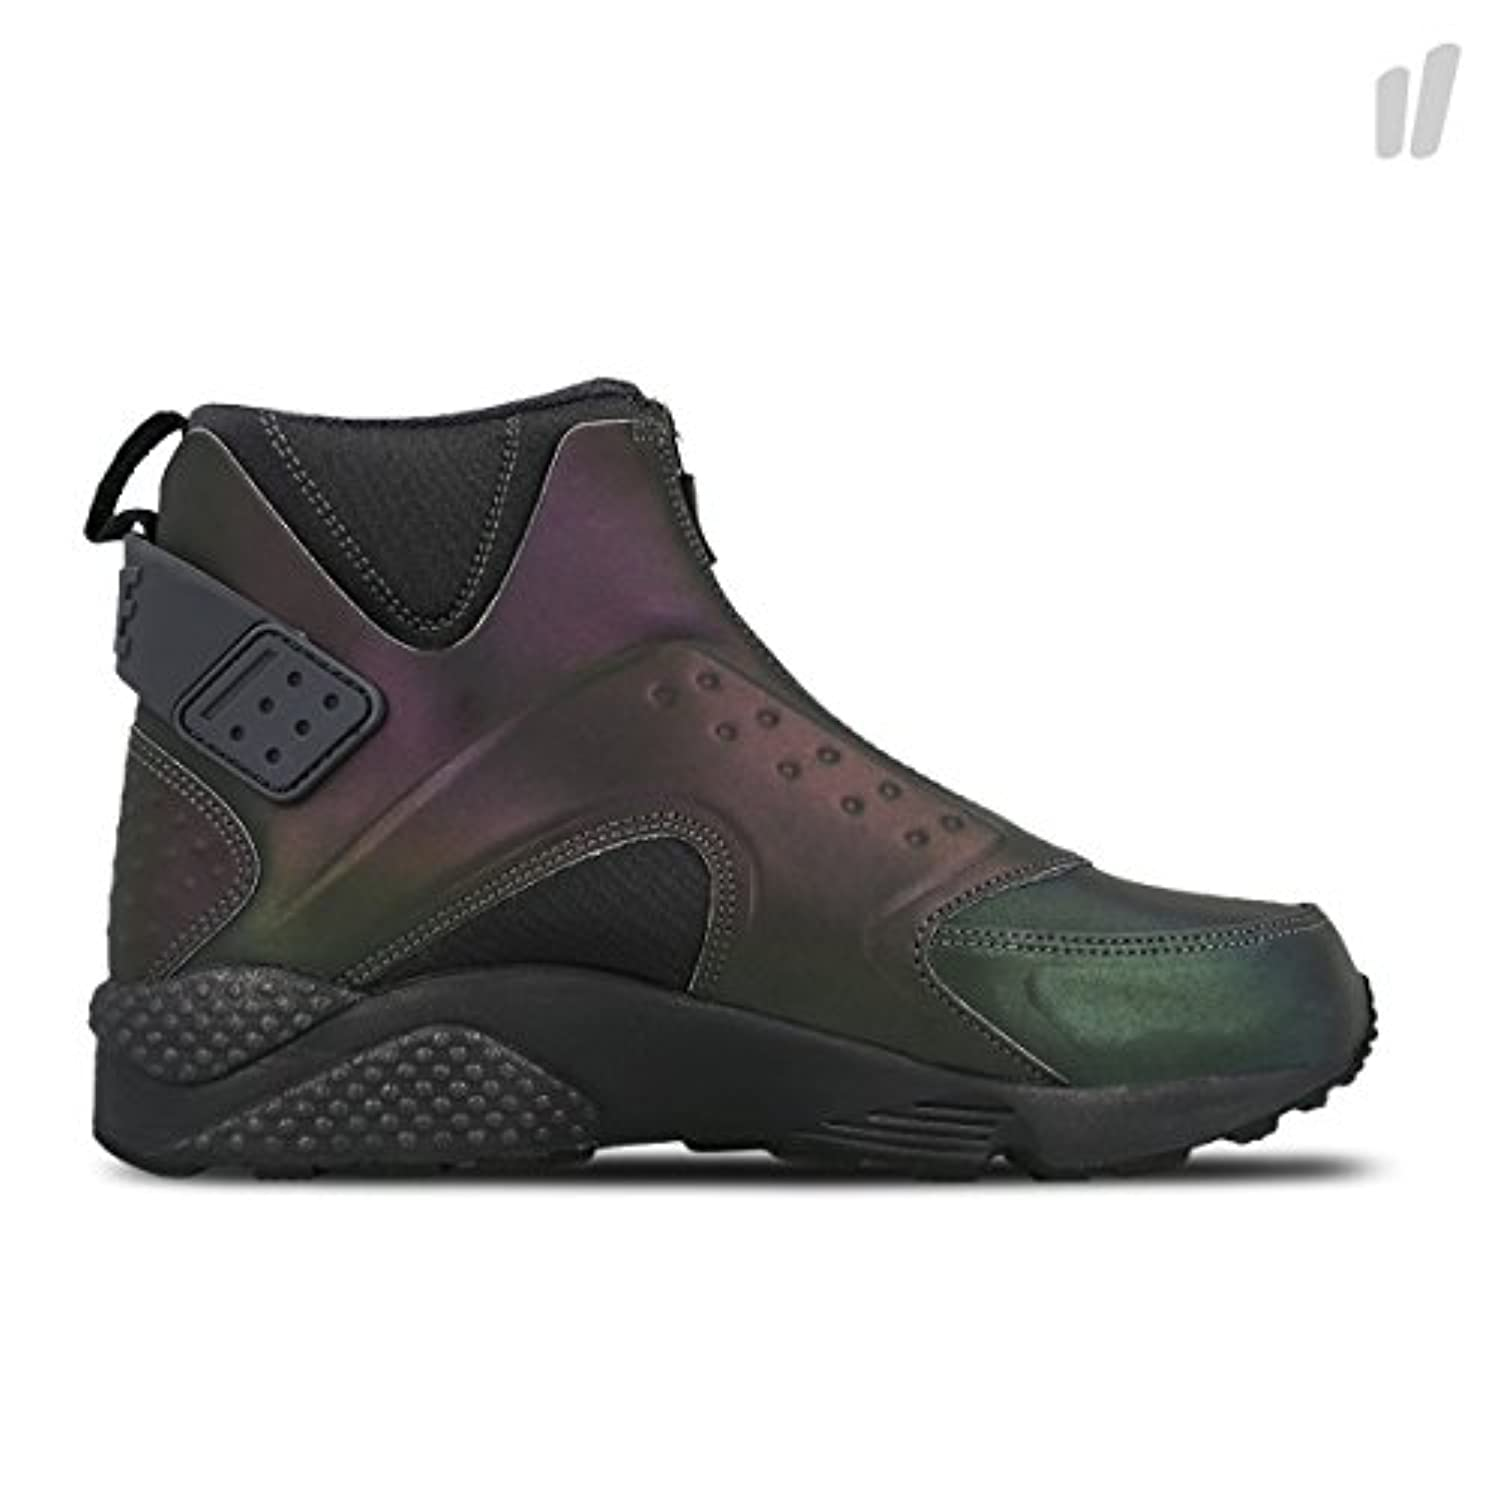 the best attitude 68747 ed3c0 Nike women Air Huarache Run Mid PRM 'Menta' 807314-001 Size 11.5 | $59.95 -  Buy today!